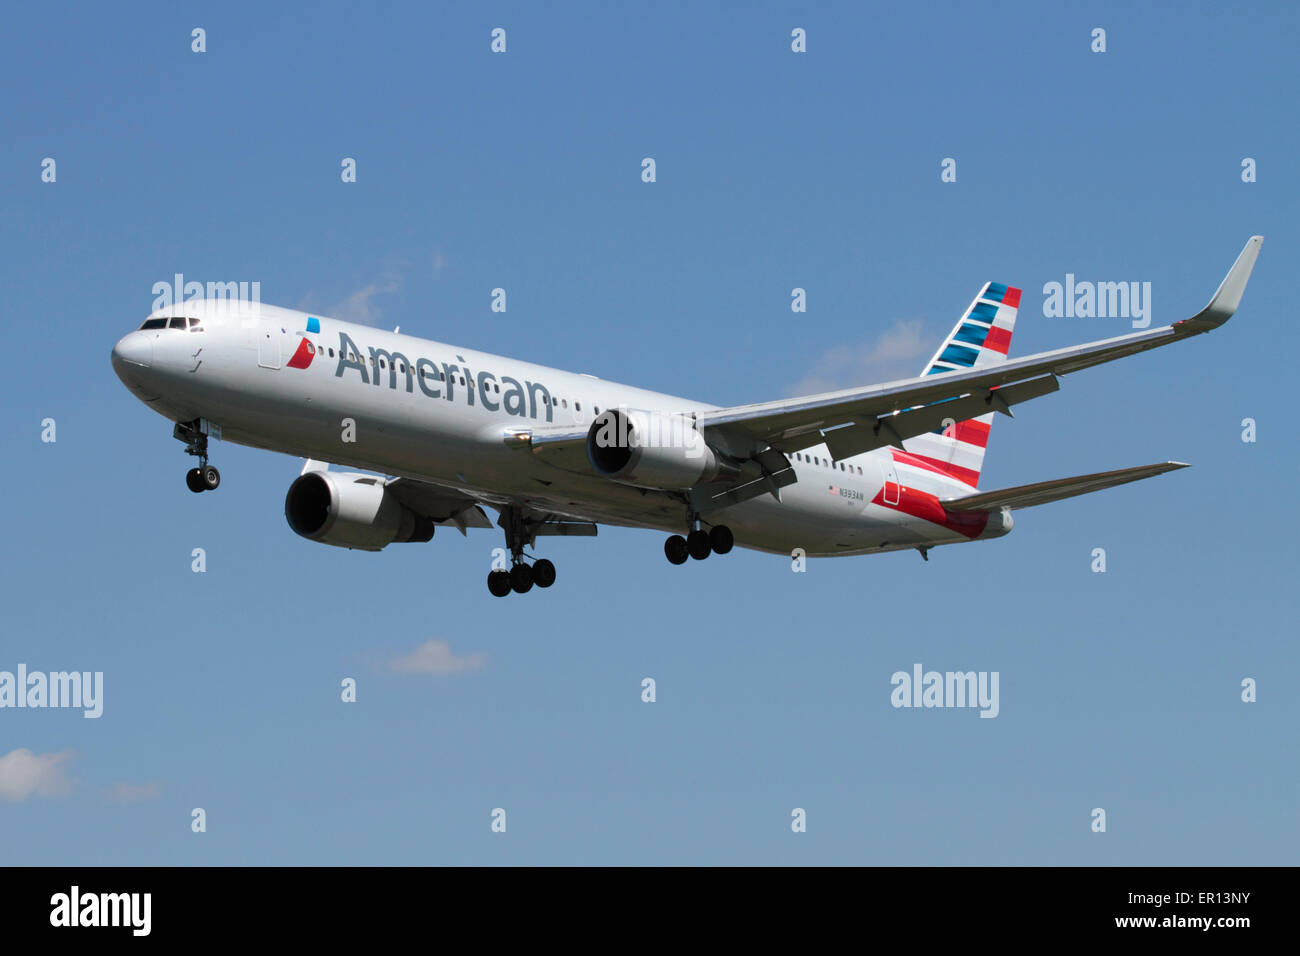 American Airlines Boeing 767-300ER passenger jet plane on approach Stock Photo